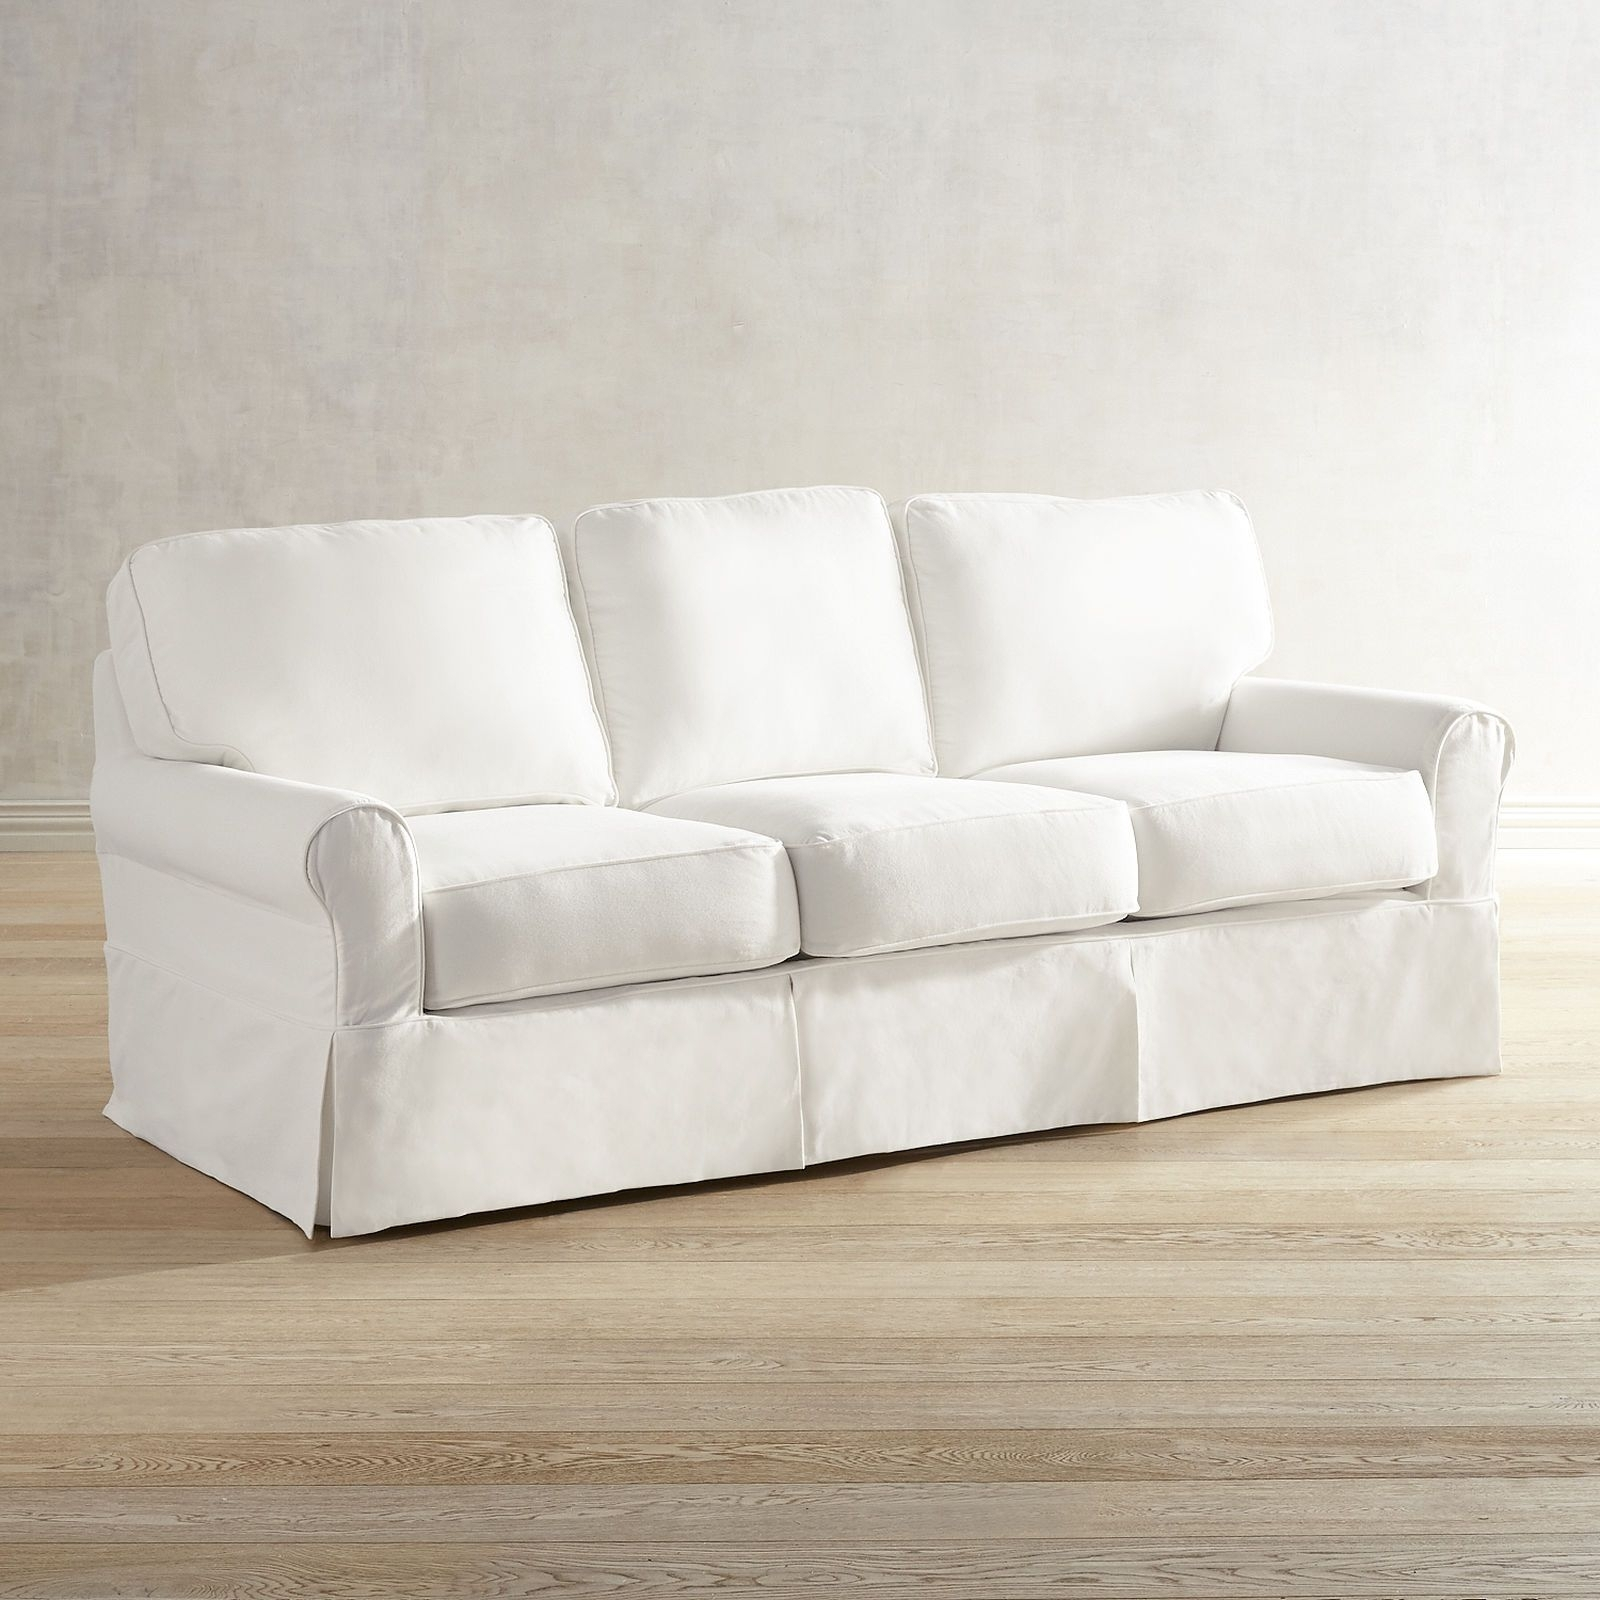 Lia Pierformance™ White Slipcovered Sofa | F U R N I T U R E intended for London Optical Reversible Sofa Chaise Sectionals (Image 12 of 30)